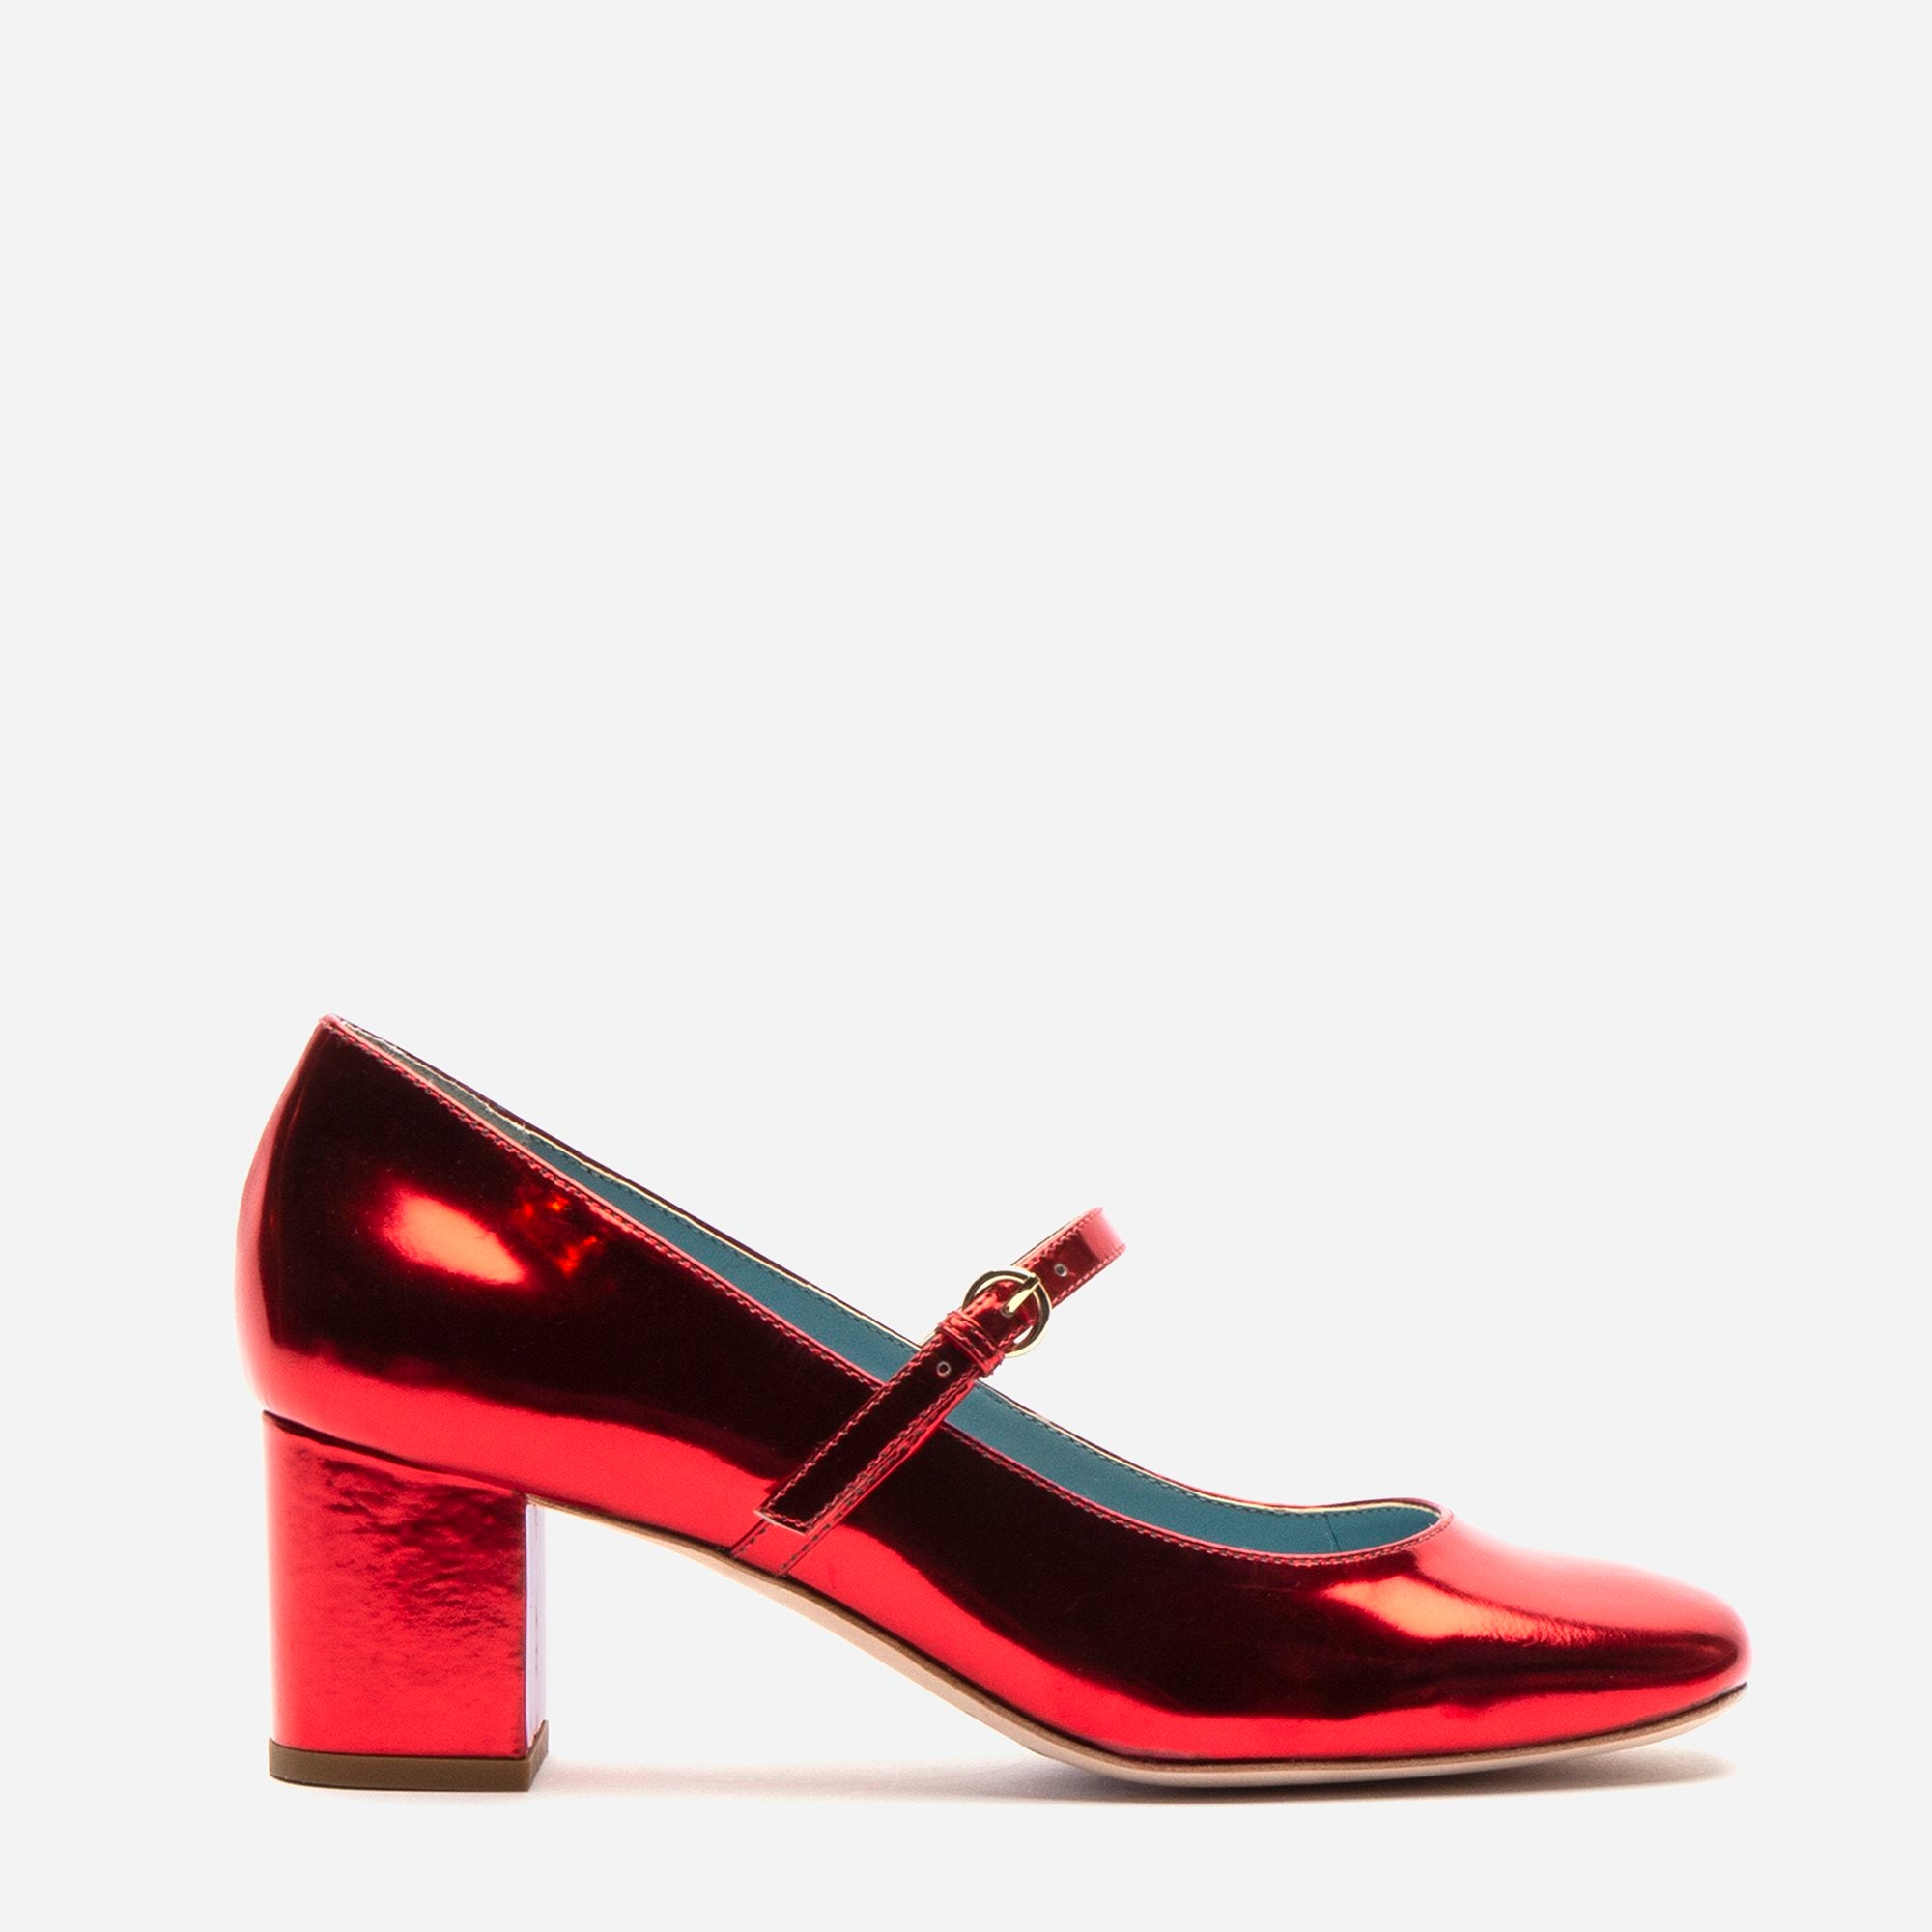 Kat Mary Jane Heels Specchio Red - Frances Valentine